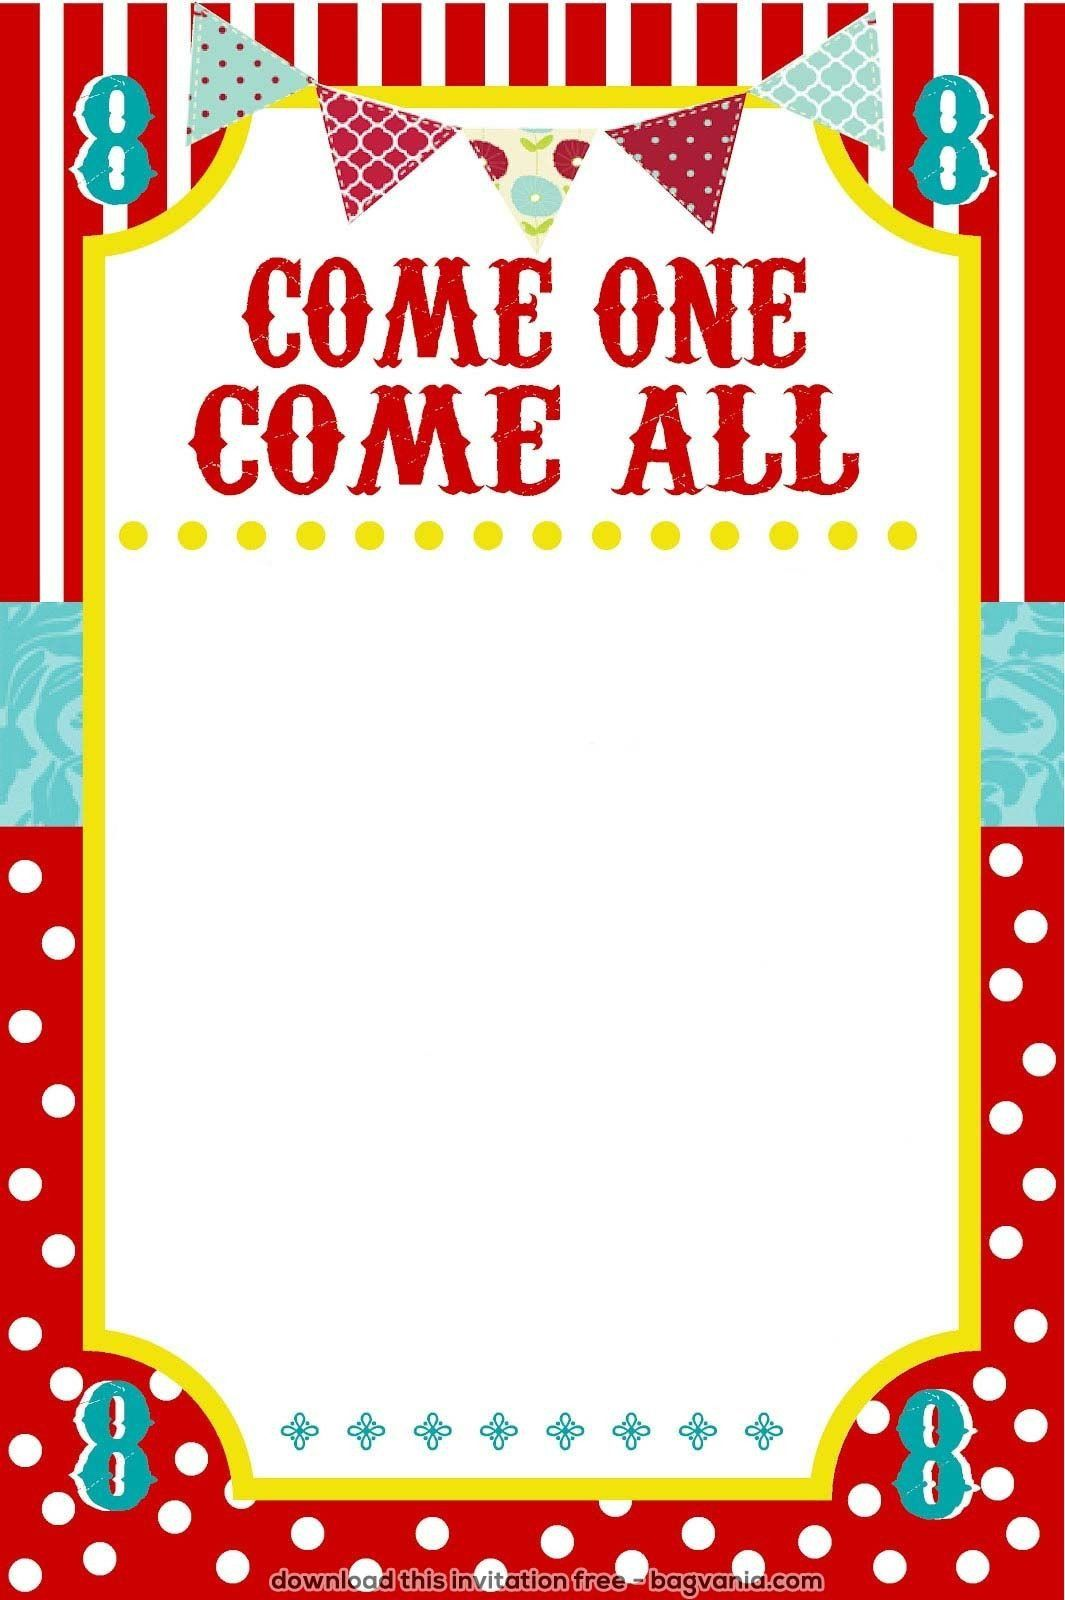 Pin On Invitation Ideas Printable For Party